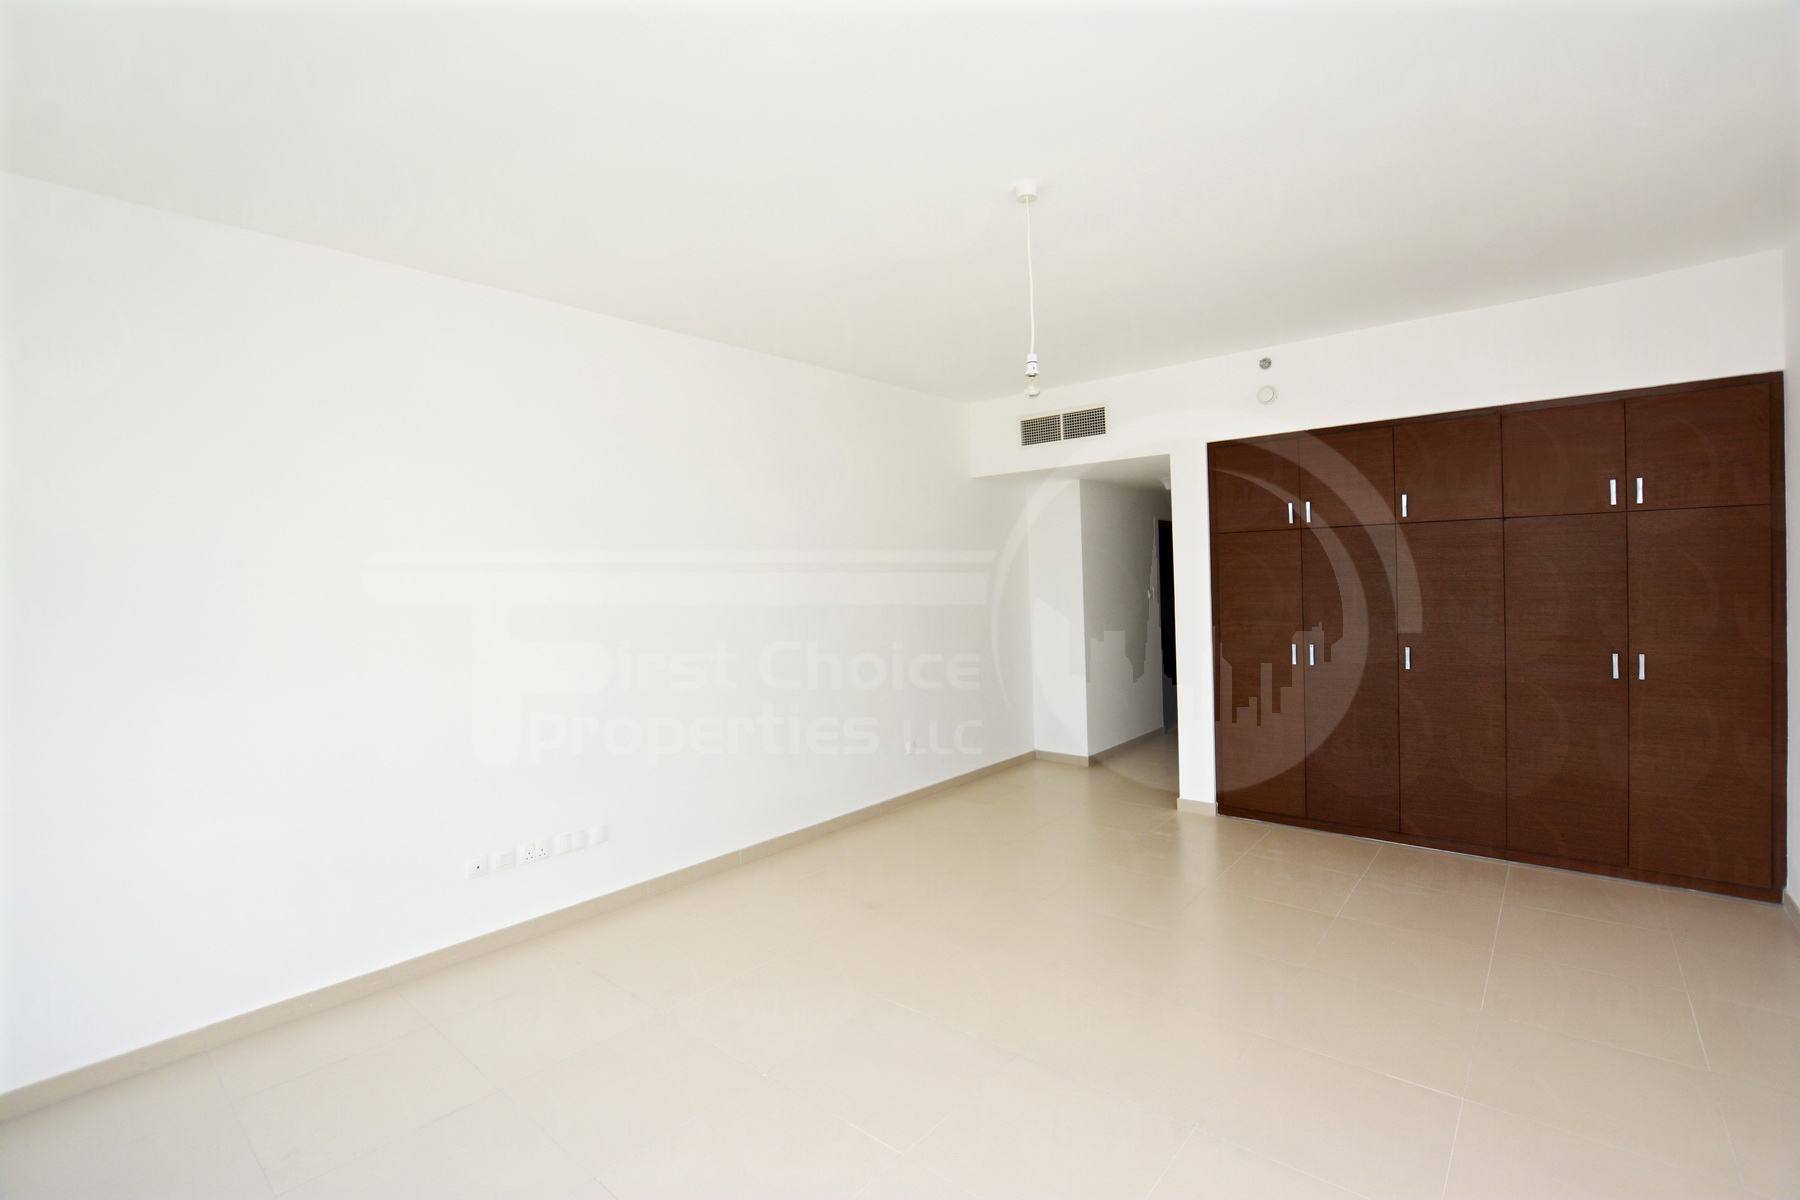 Studio Apartment - Abu Dhabi - UAE - Gate Tower - Al Reem Island (4).JPG